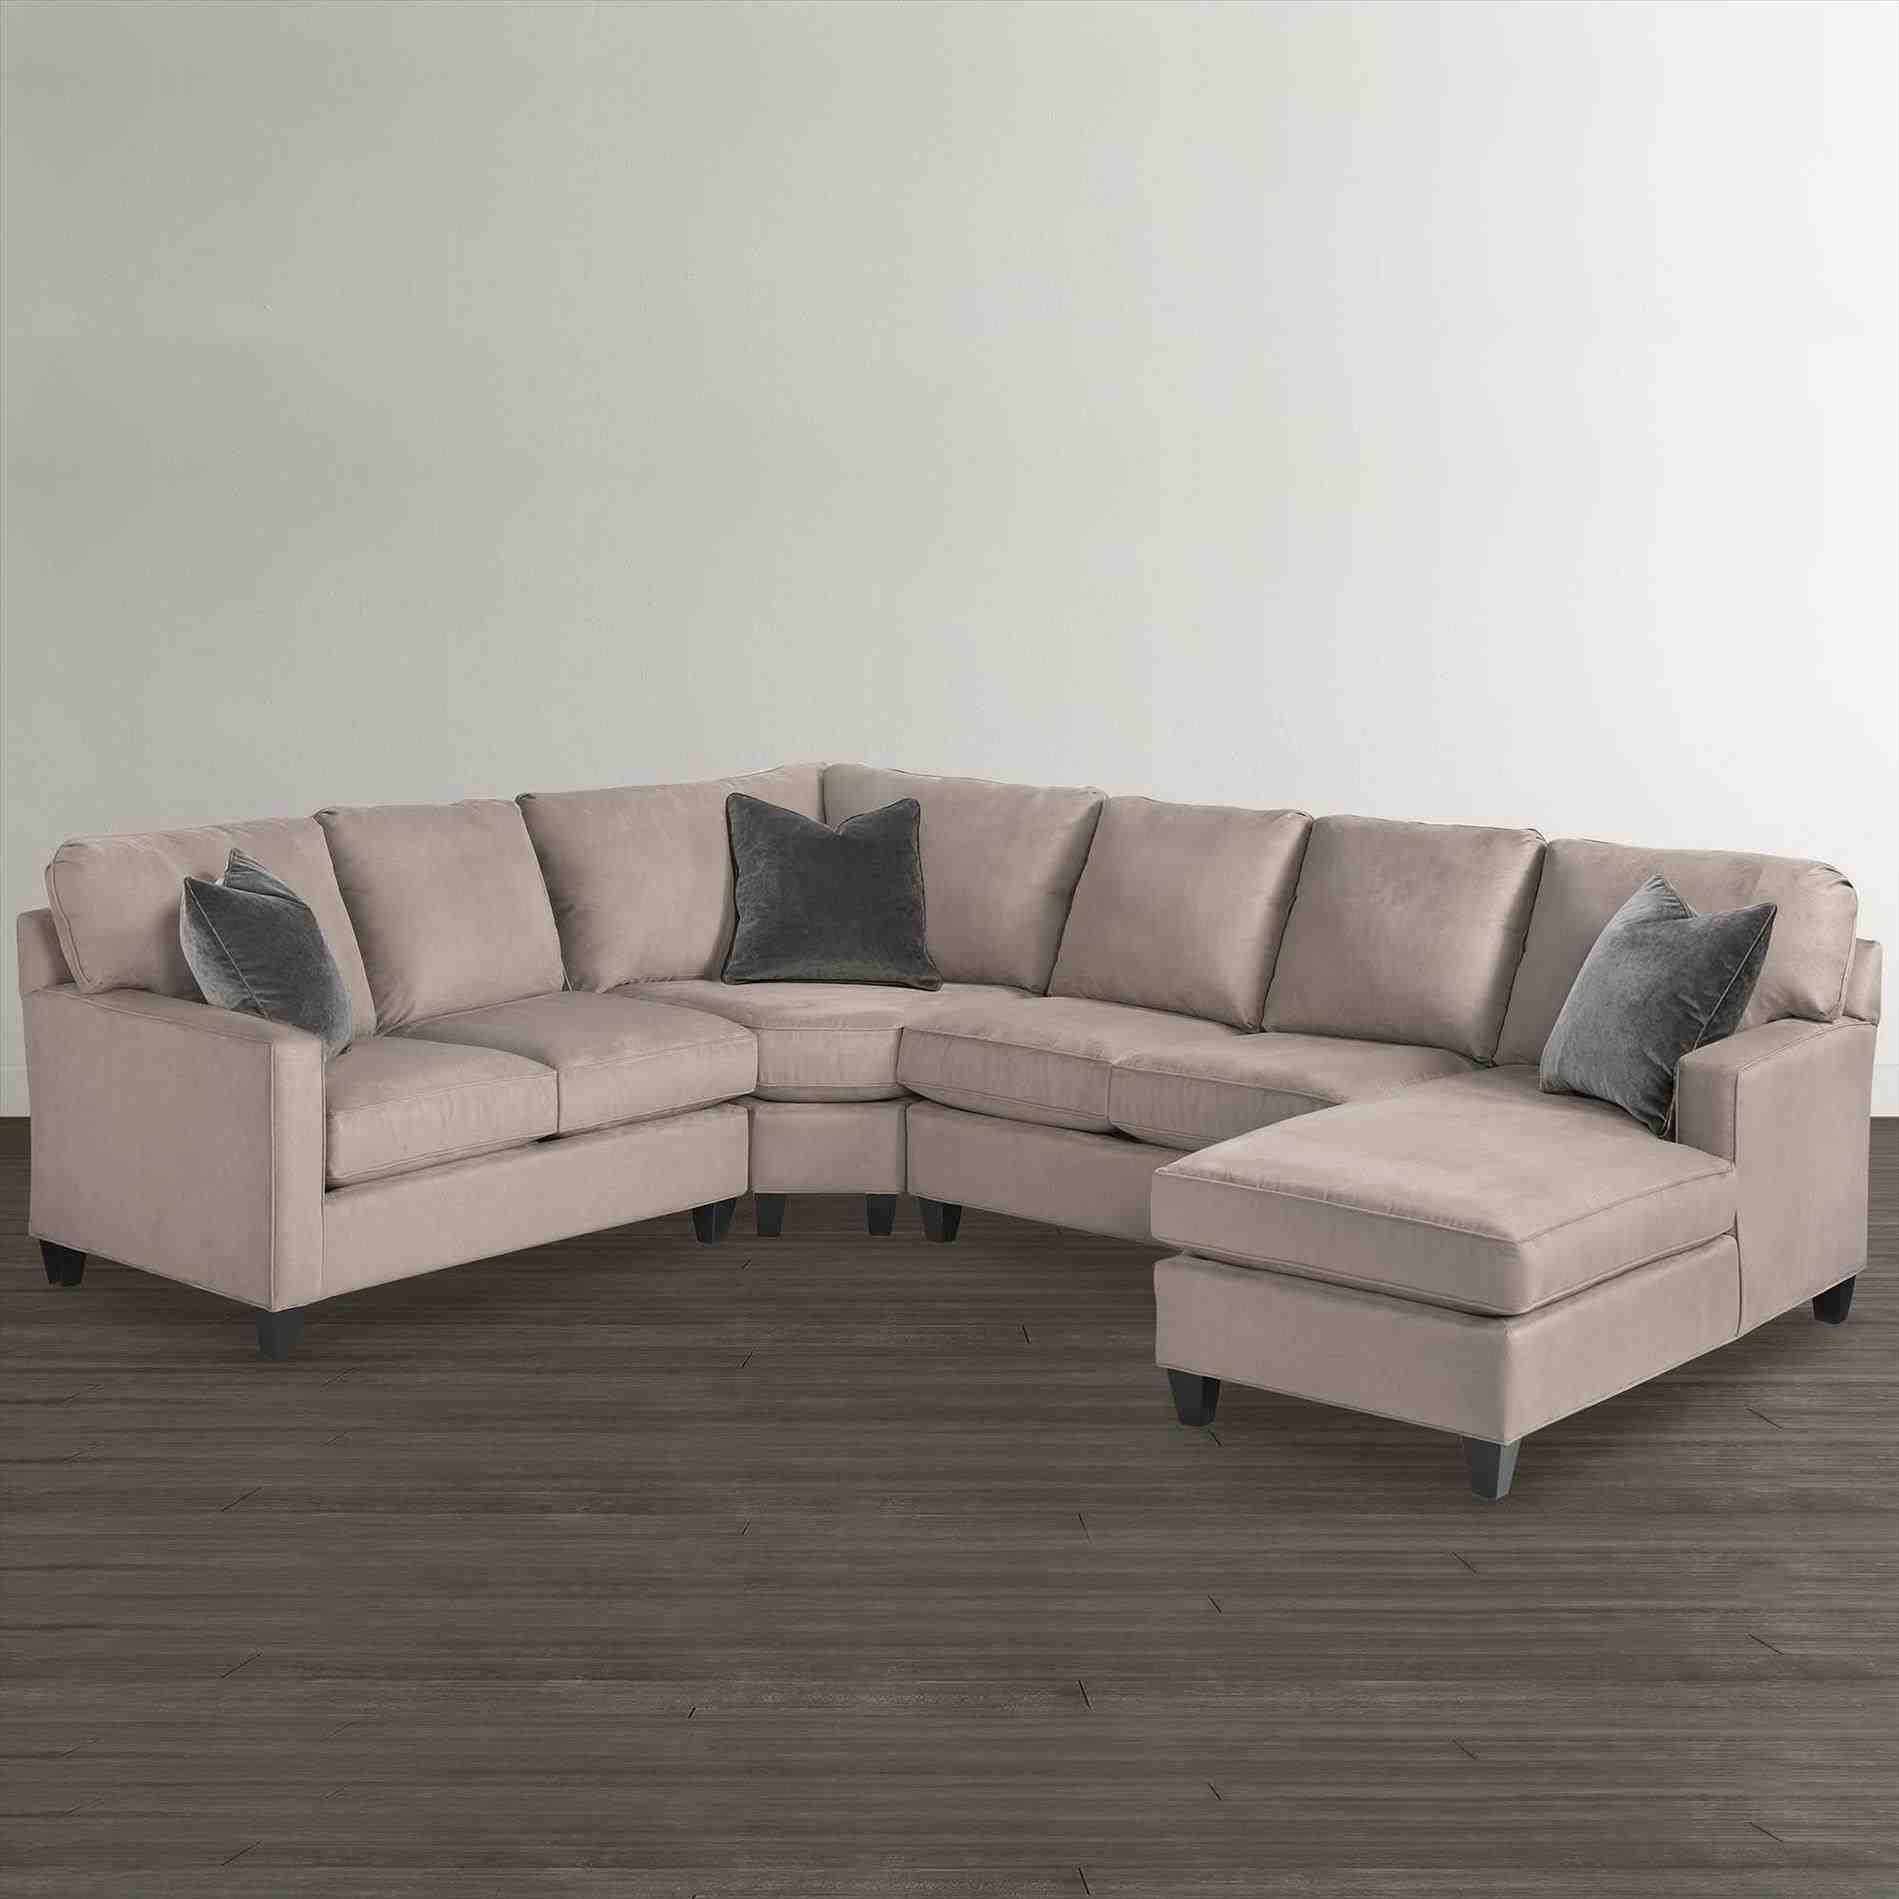 Sofa Deals Near Me Cheap Sectionals In Ri Full Size Of Sofa U Shaped Sectional